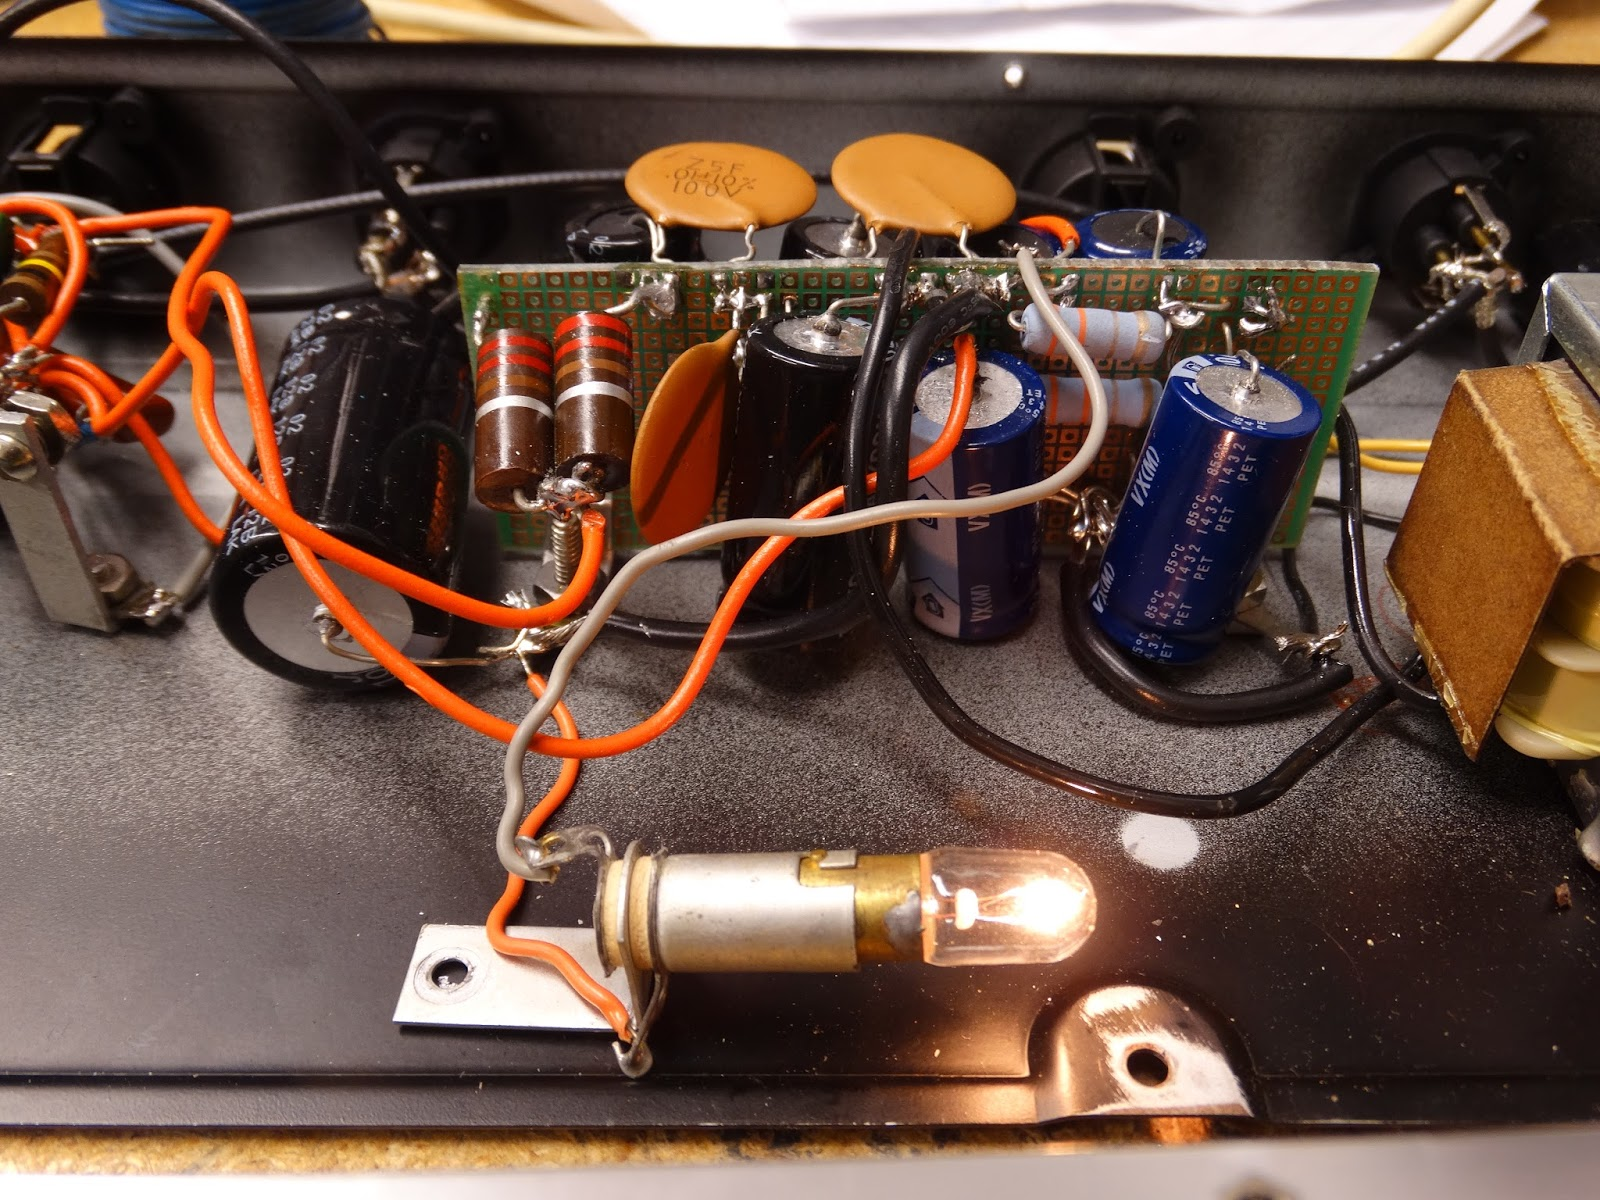 Free Music Archive Ionosonderecs Blog Piezoelectric Amplifier Circuit Hacked Gadgets Diy Tech Kids You Might Want To Ask Your Parents What A Incandescent Light Bulb Is